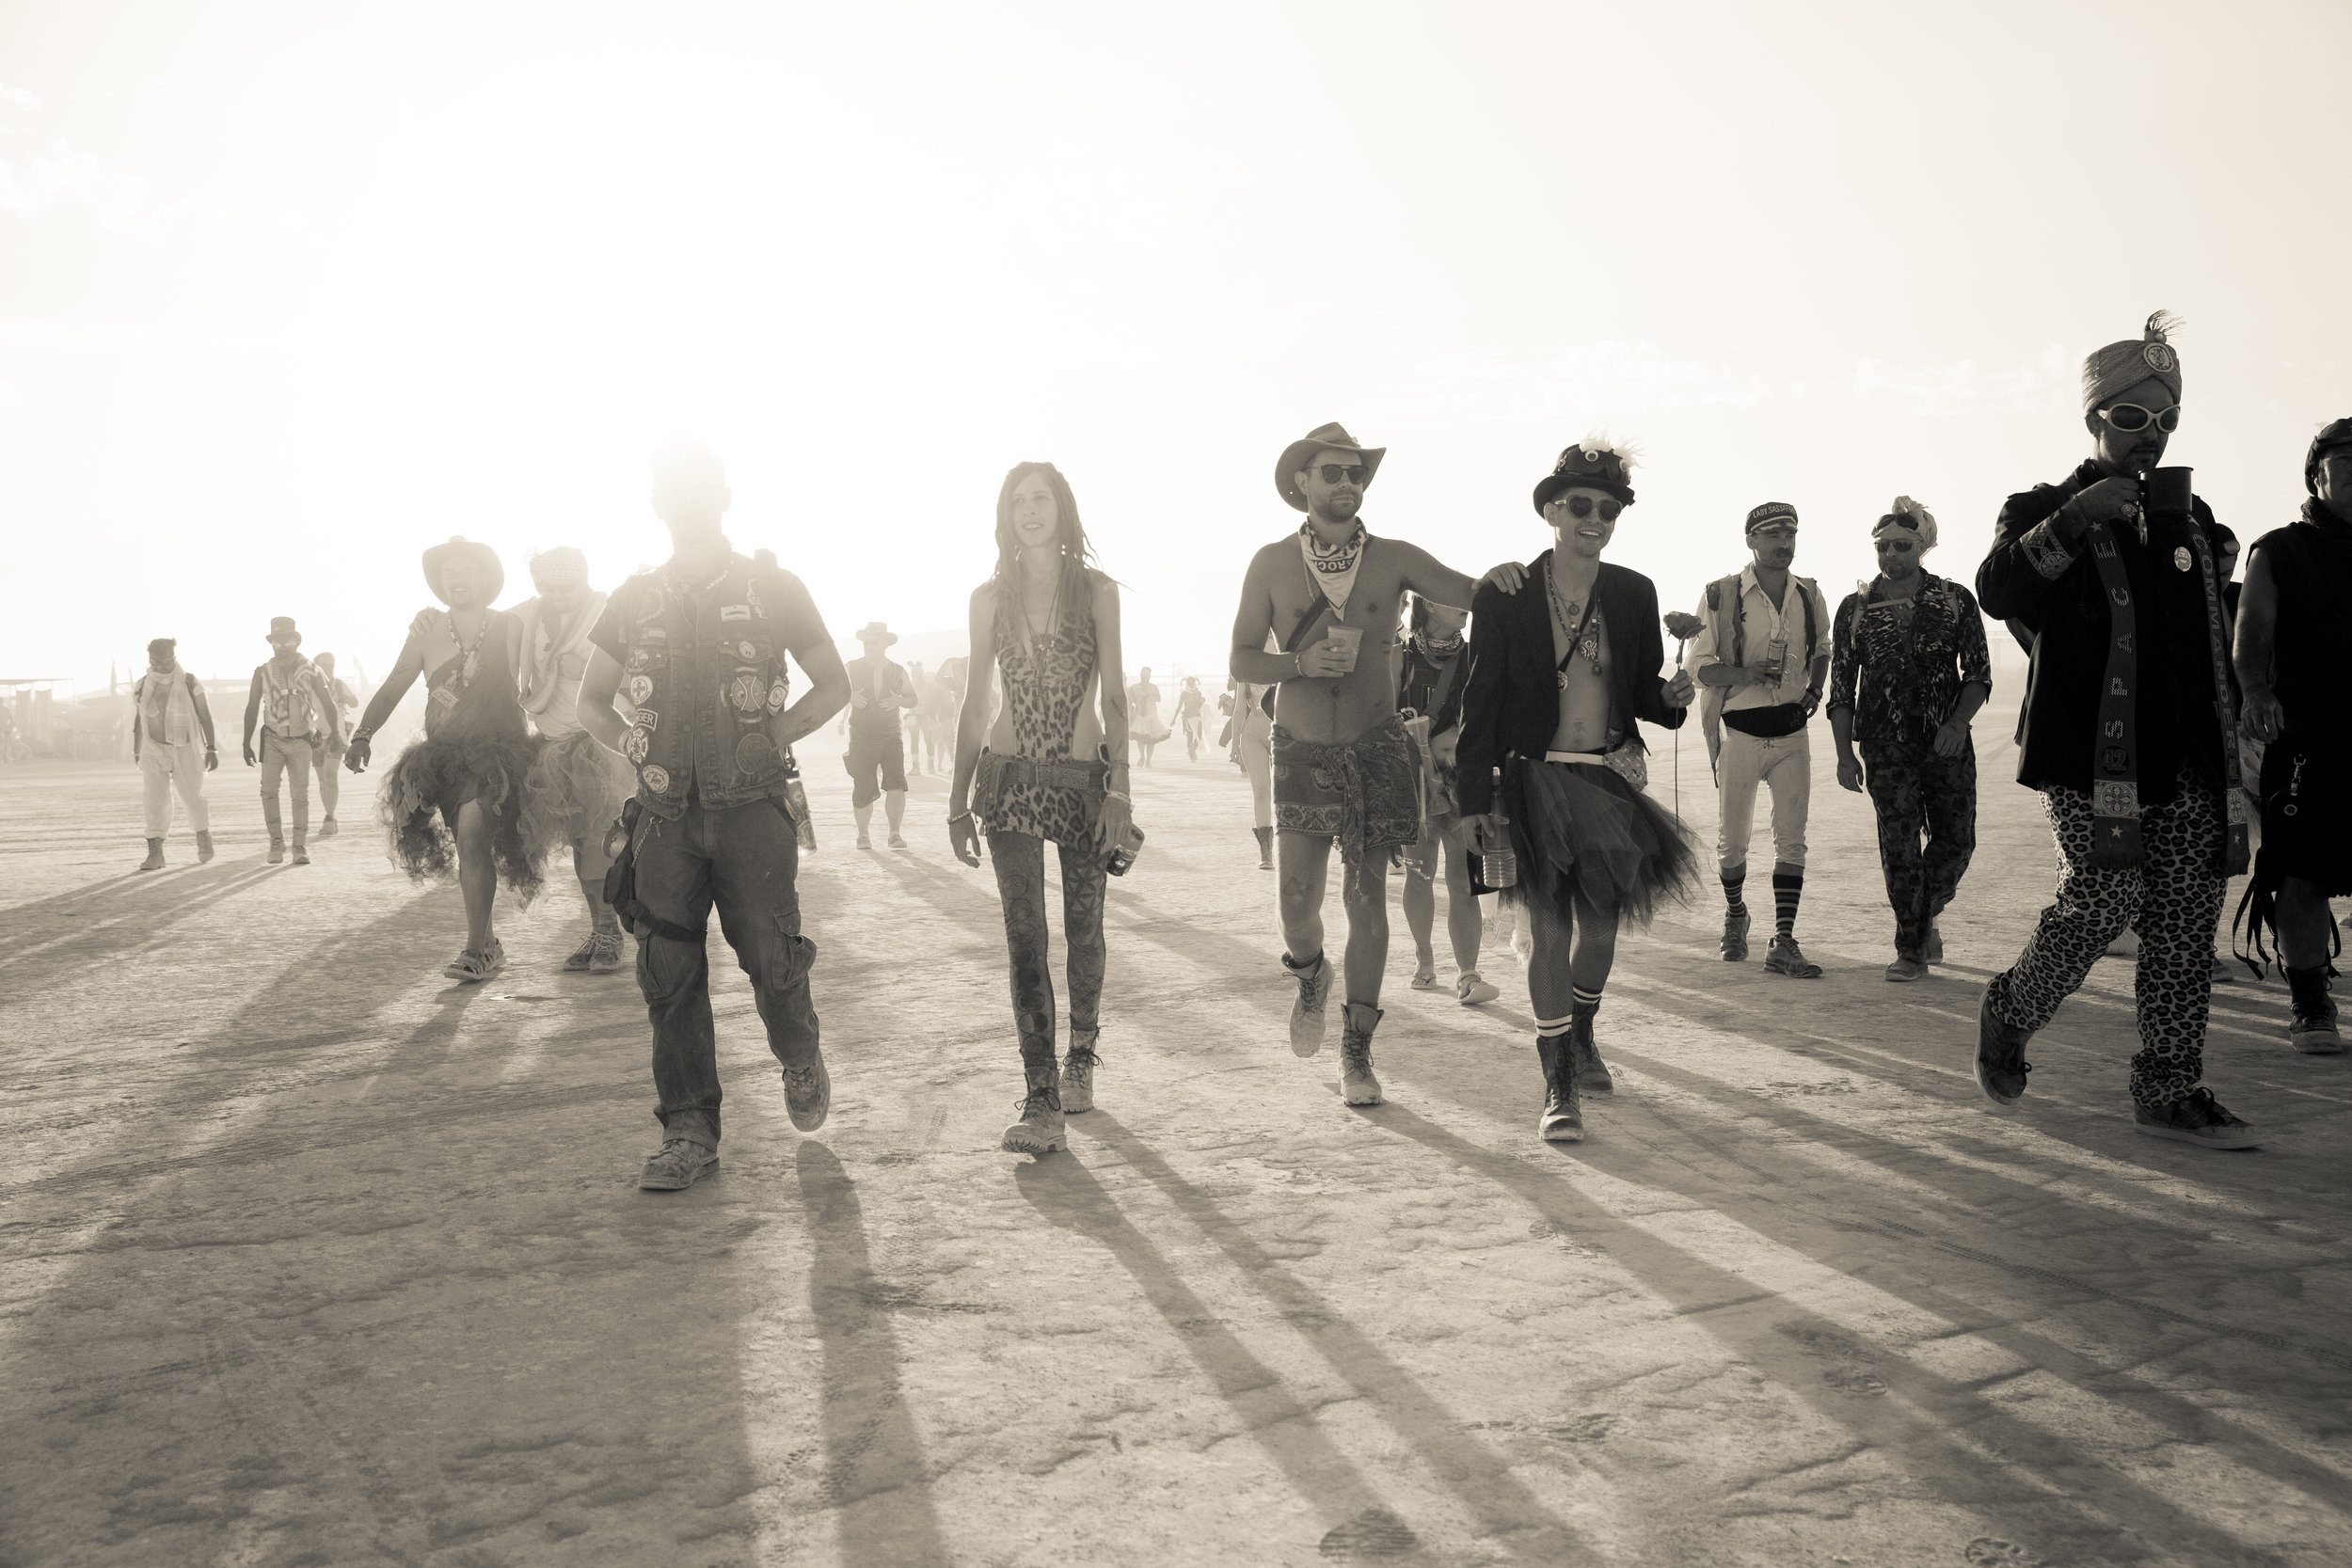 Burning_Man_201620160830_B5D4731.jpg